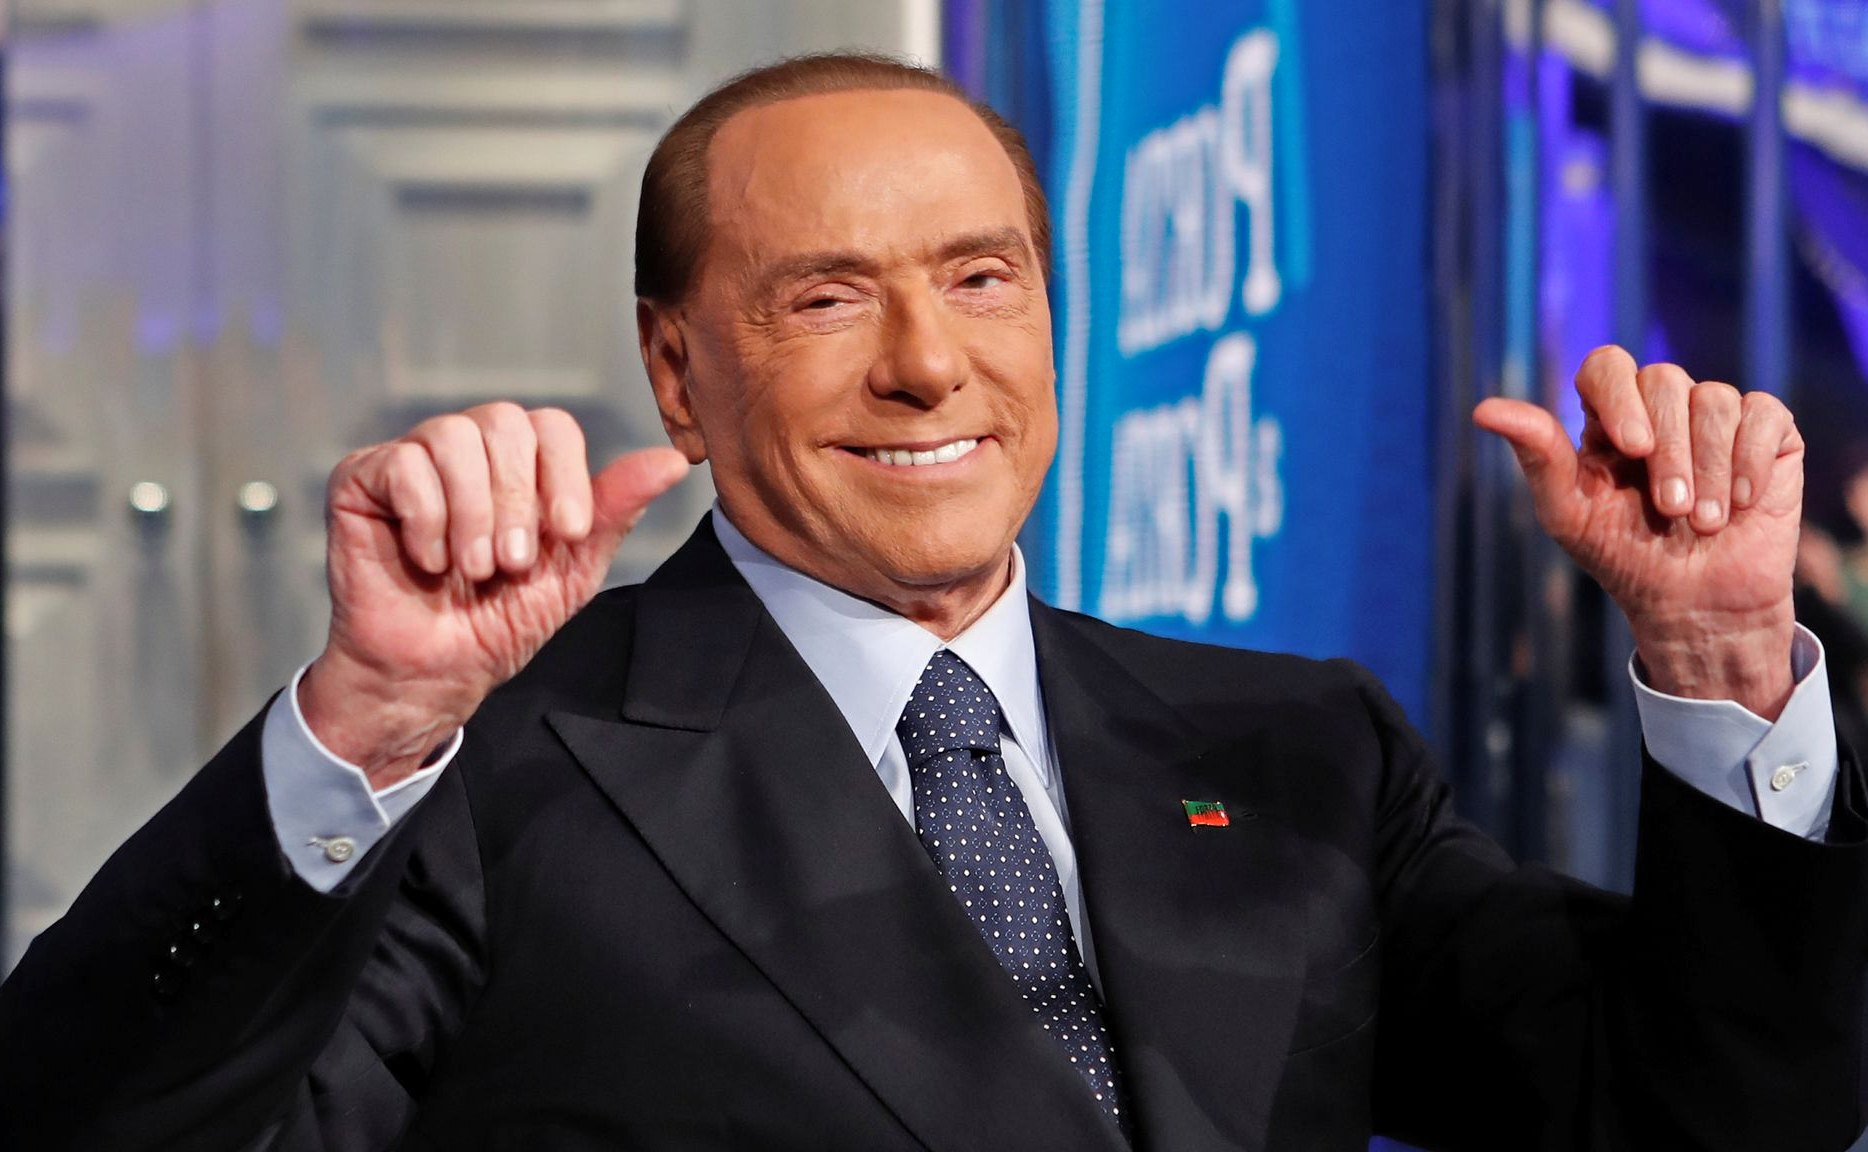 3.-Silvio-Berlusconi_-8.5-Billion